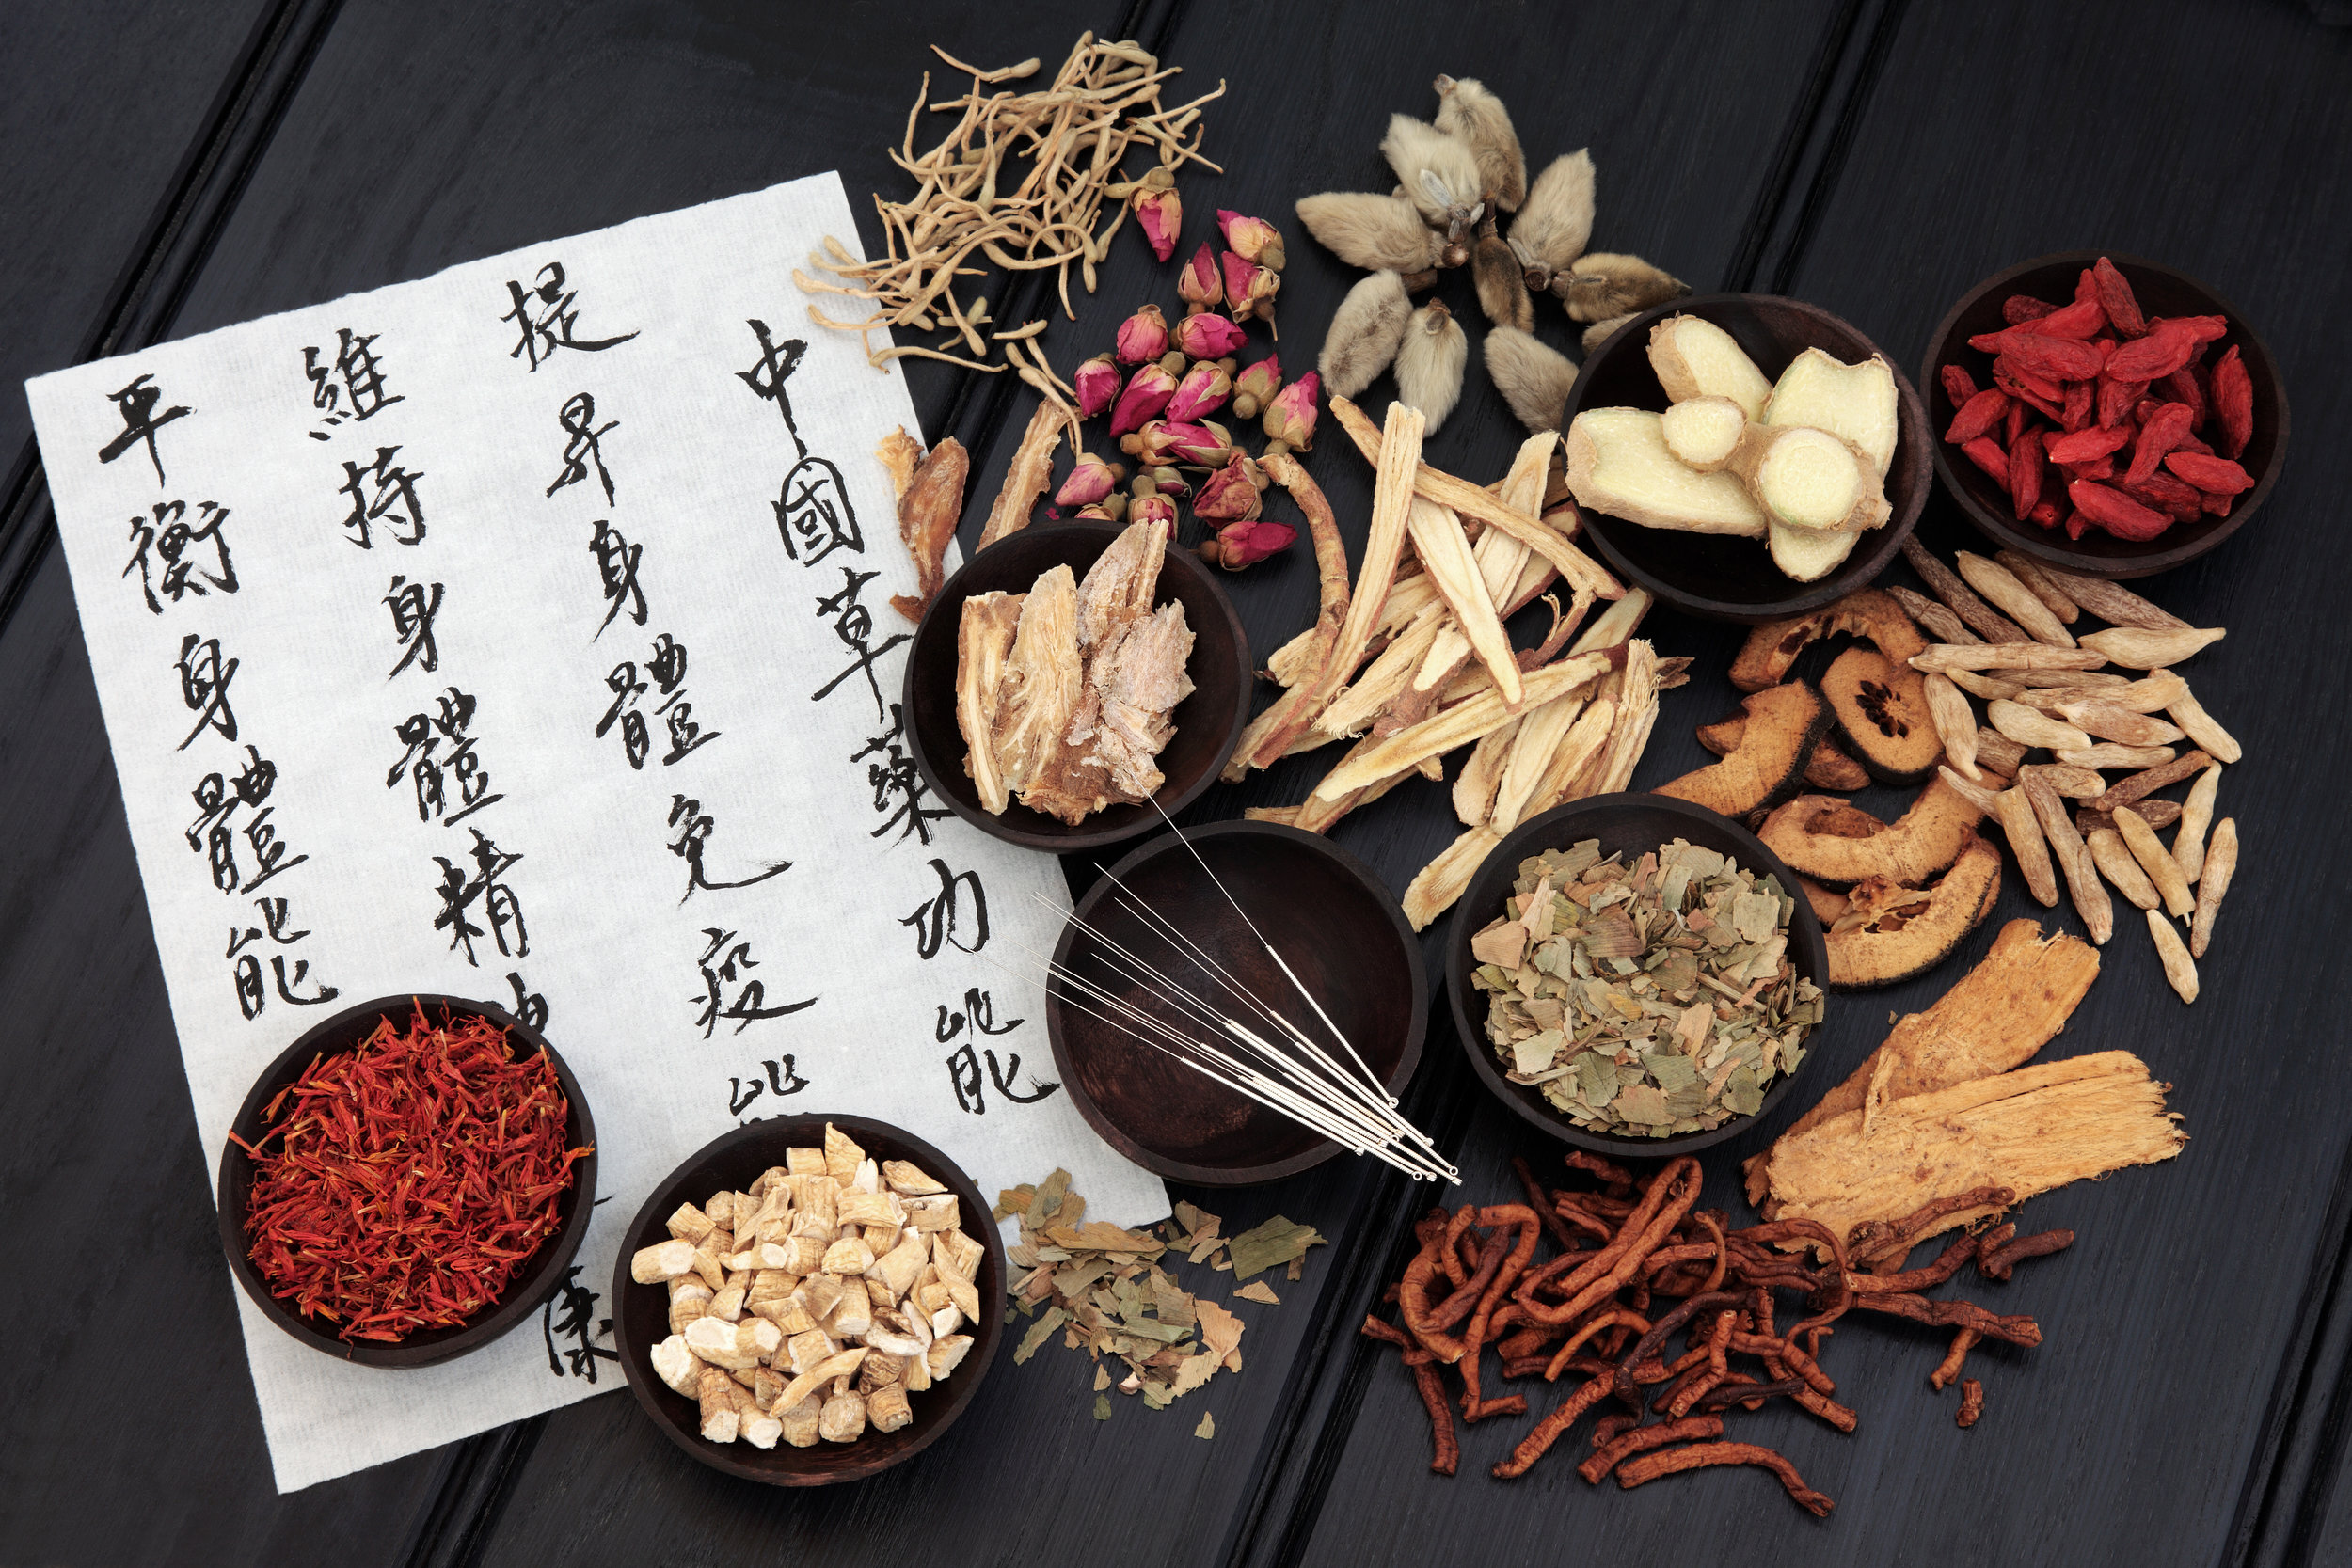 Herbal Medicine - Irregular cycles, prolapse and pelvic pain, anxiety and mental health